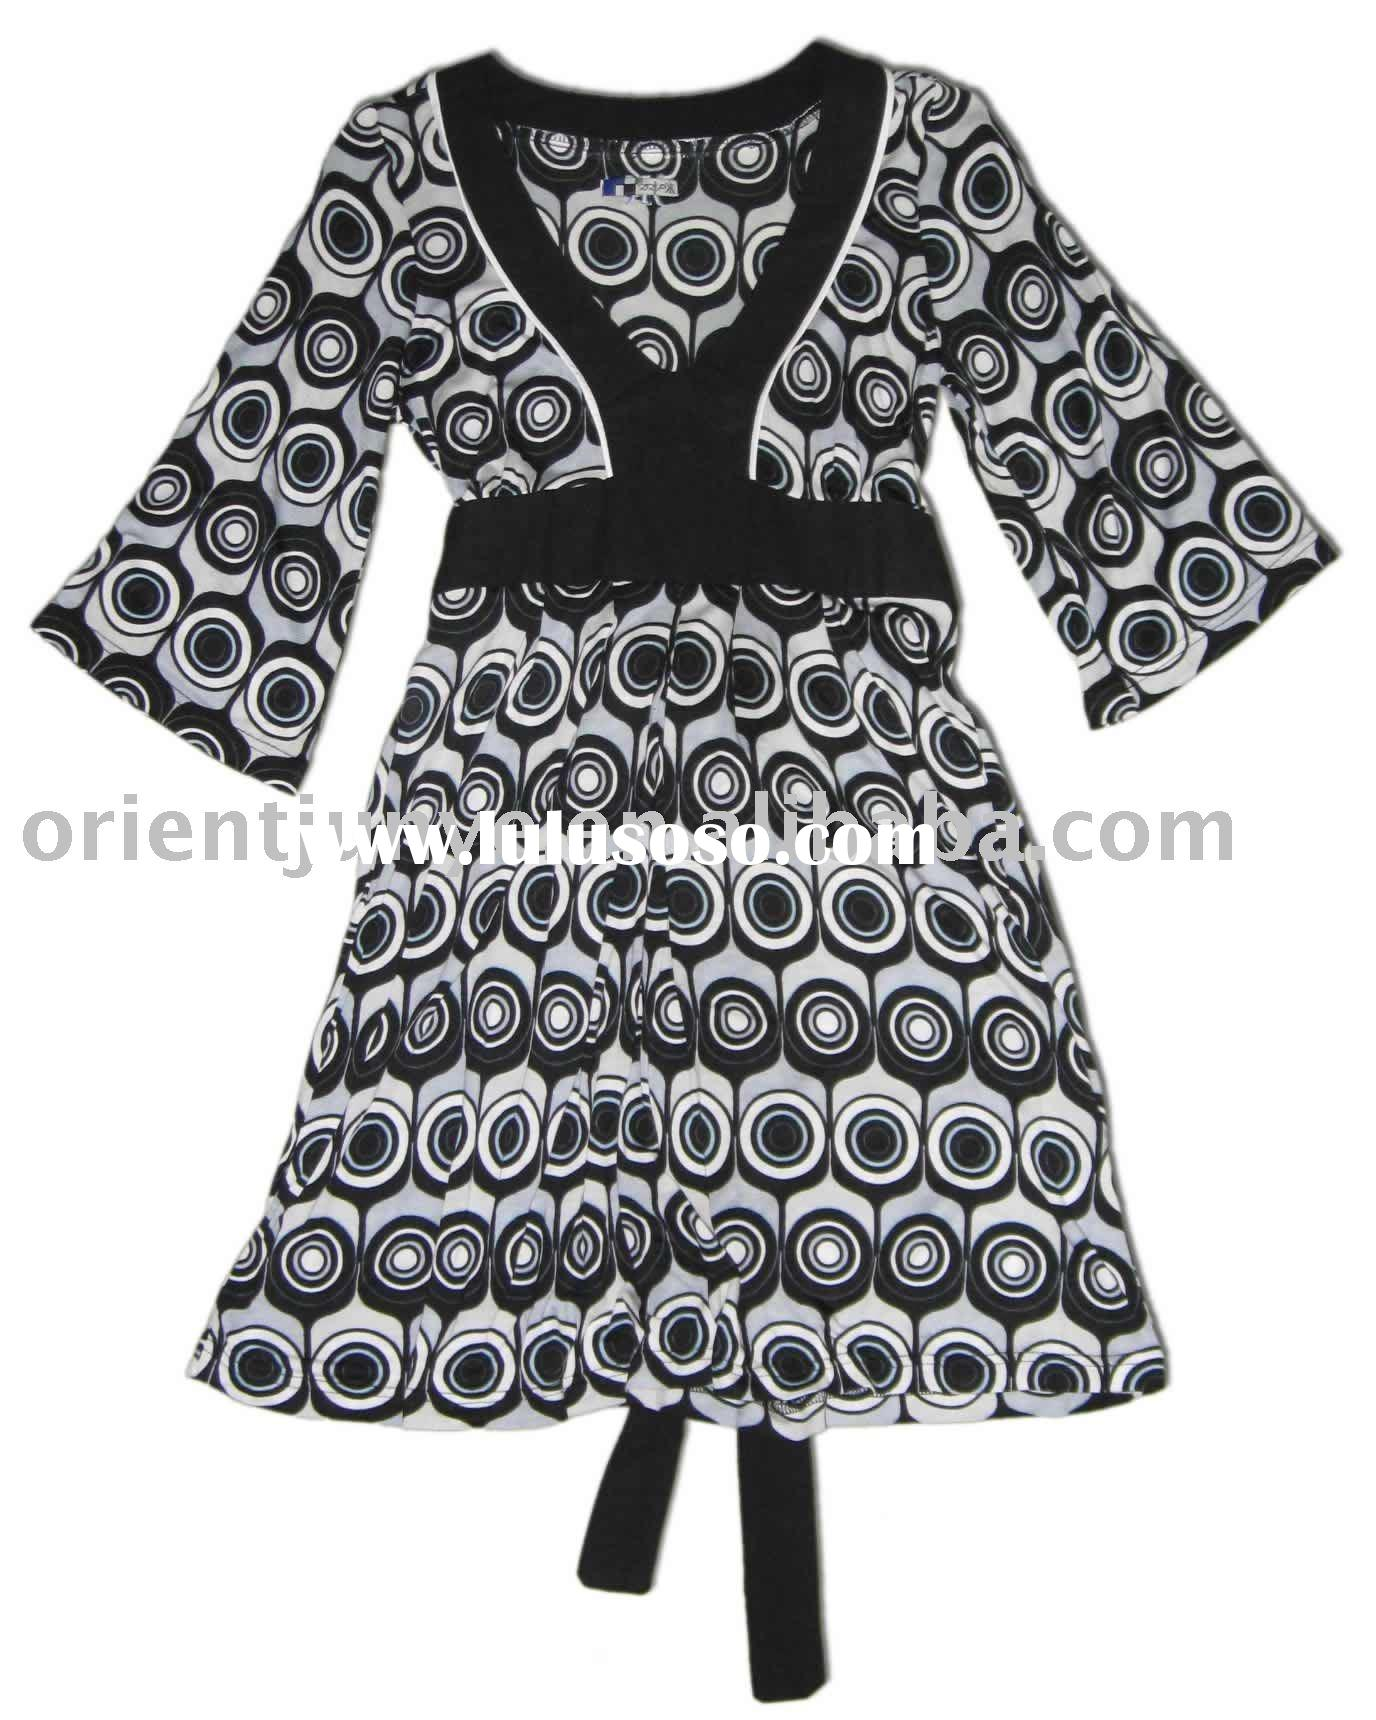 Women's dress made in 100% modal, all over printed